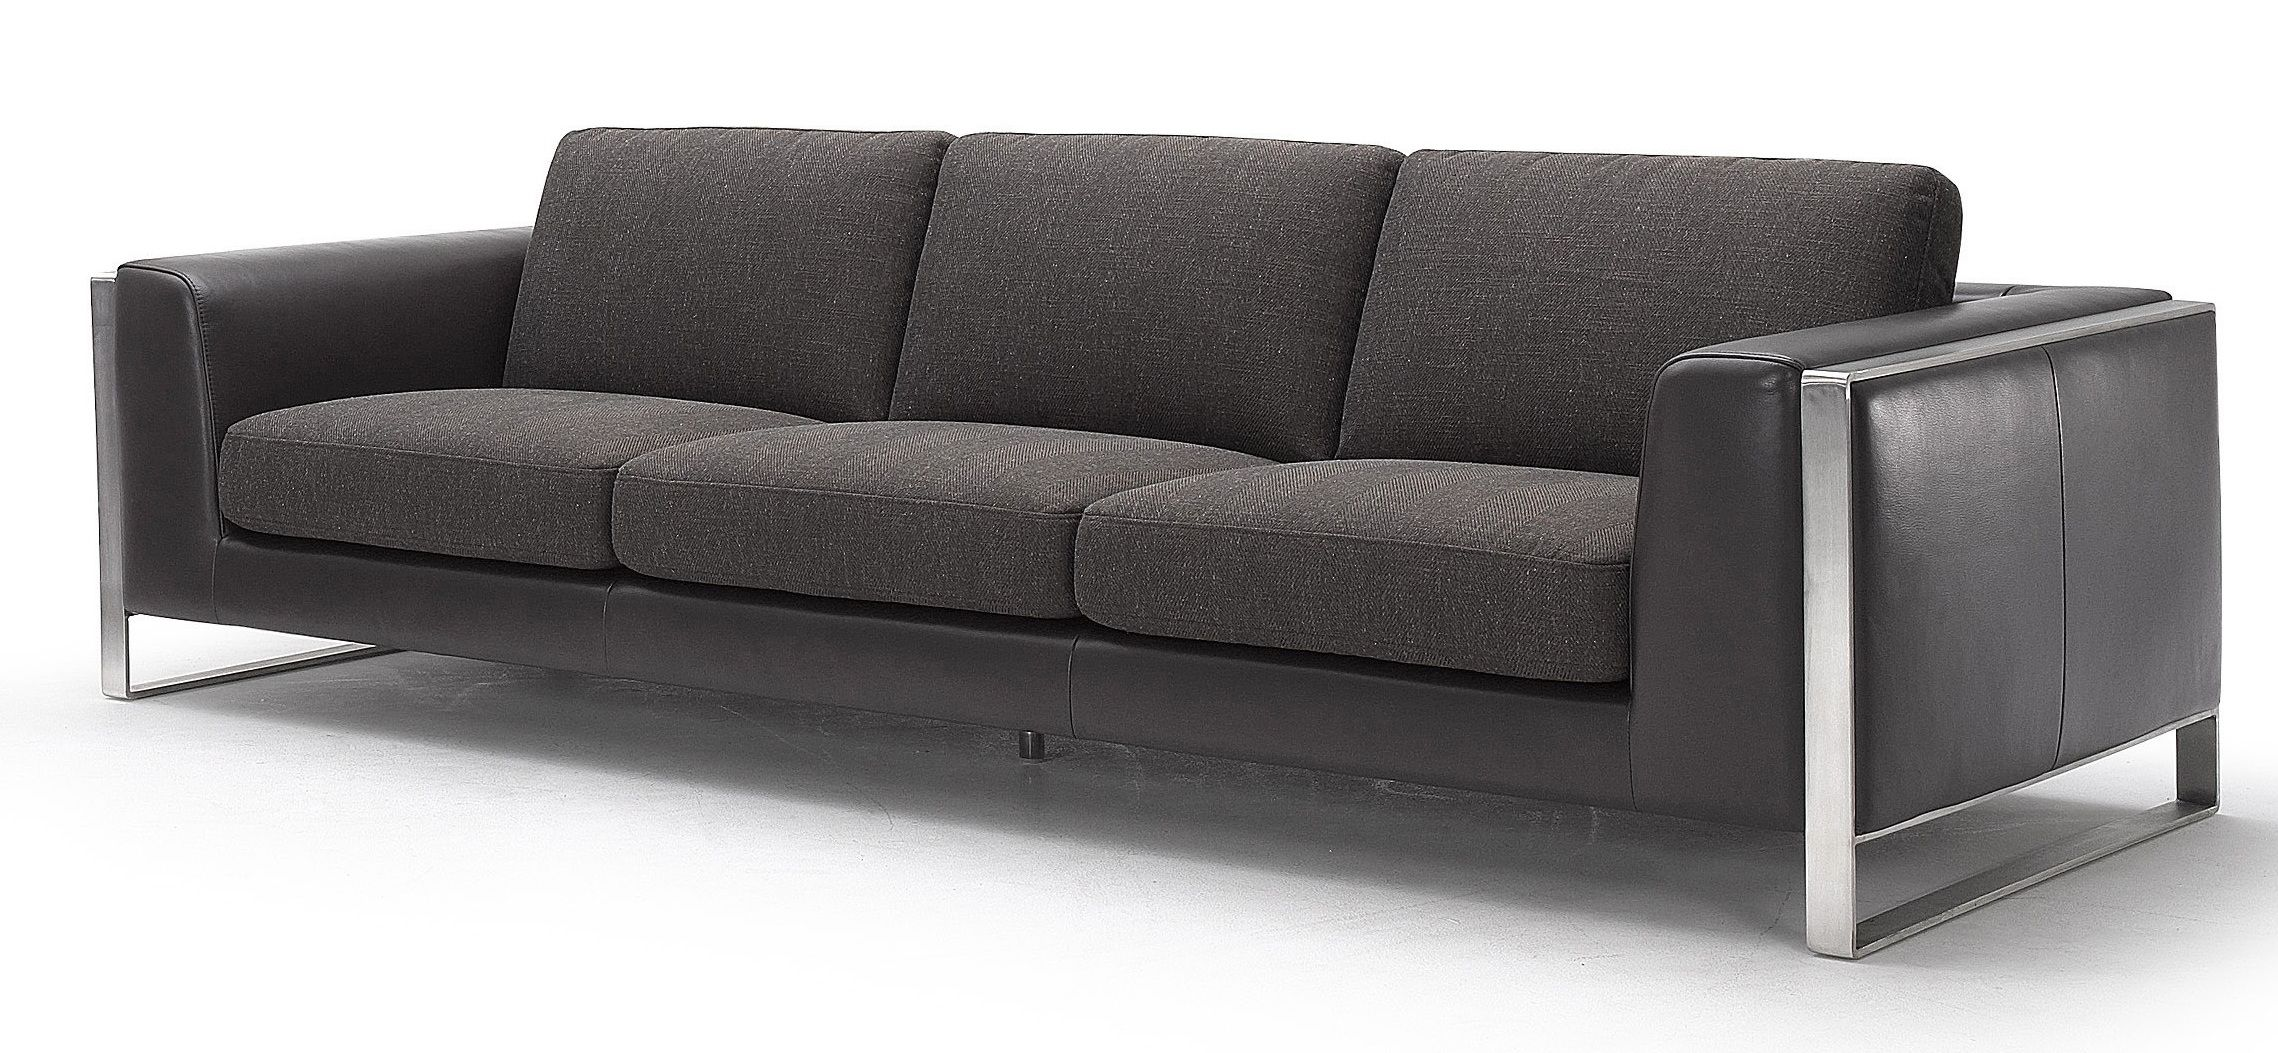 contemporary furniture sofa. home furniture improvement with contemporary sofa huzname u